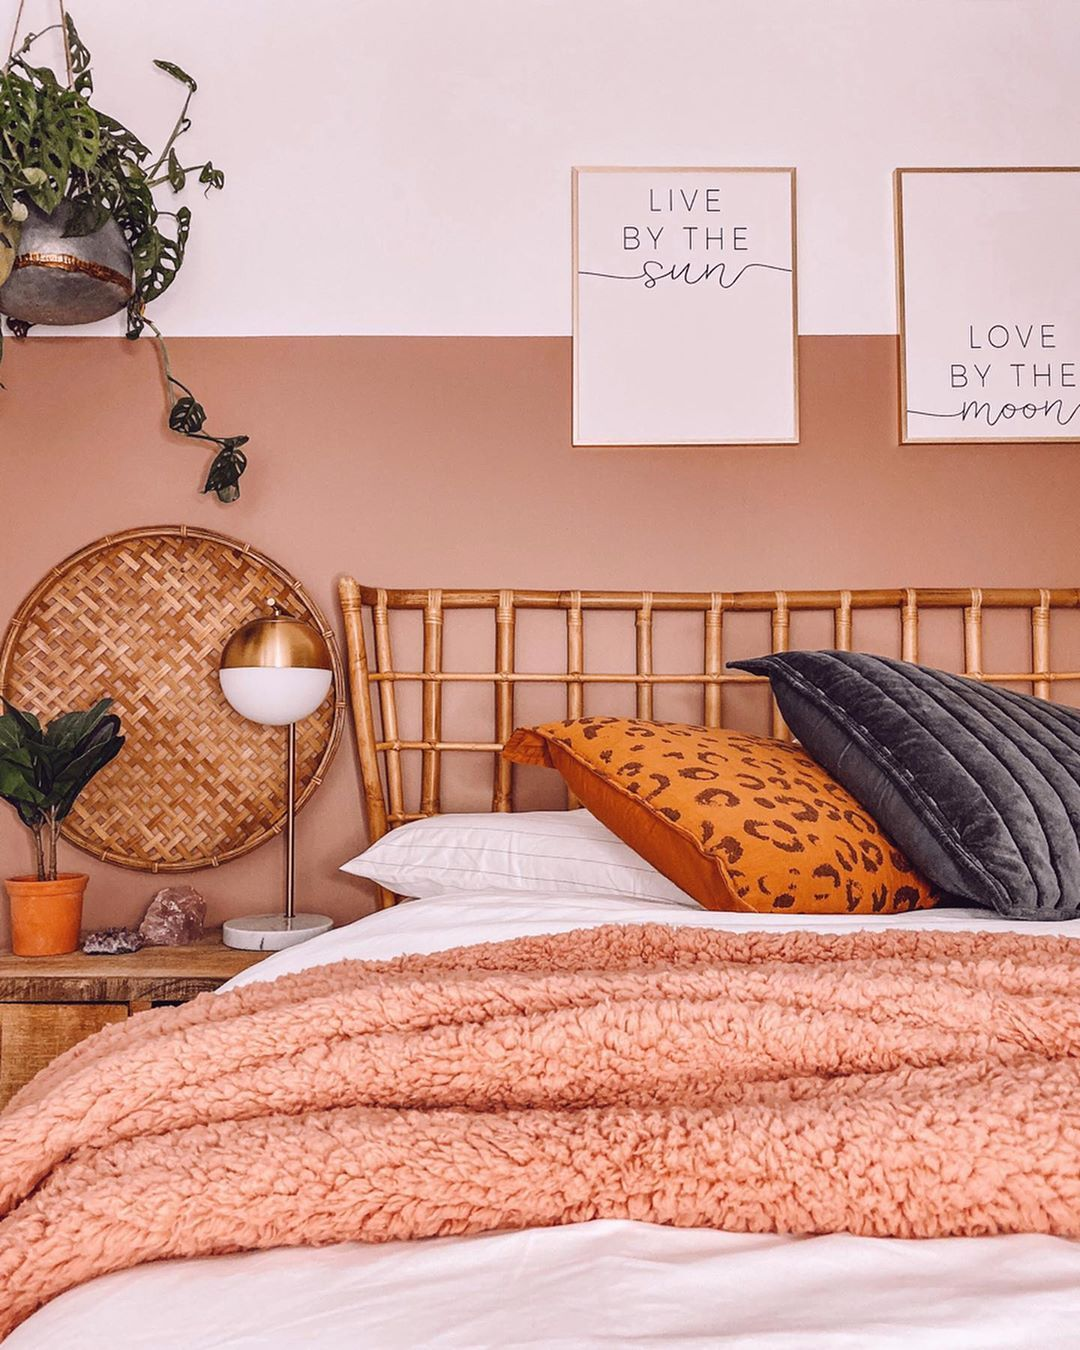 Bold Wall Paint Farrow And Ball Sulking Room Pink Dusty Rose Bedding Boho Style Bedroom Guest Room Bed Dusty Pink Bedroom Dusty Rose Bedding